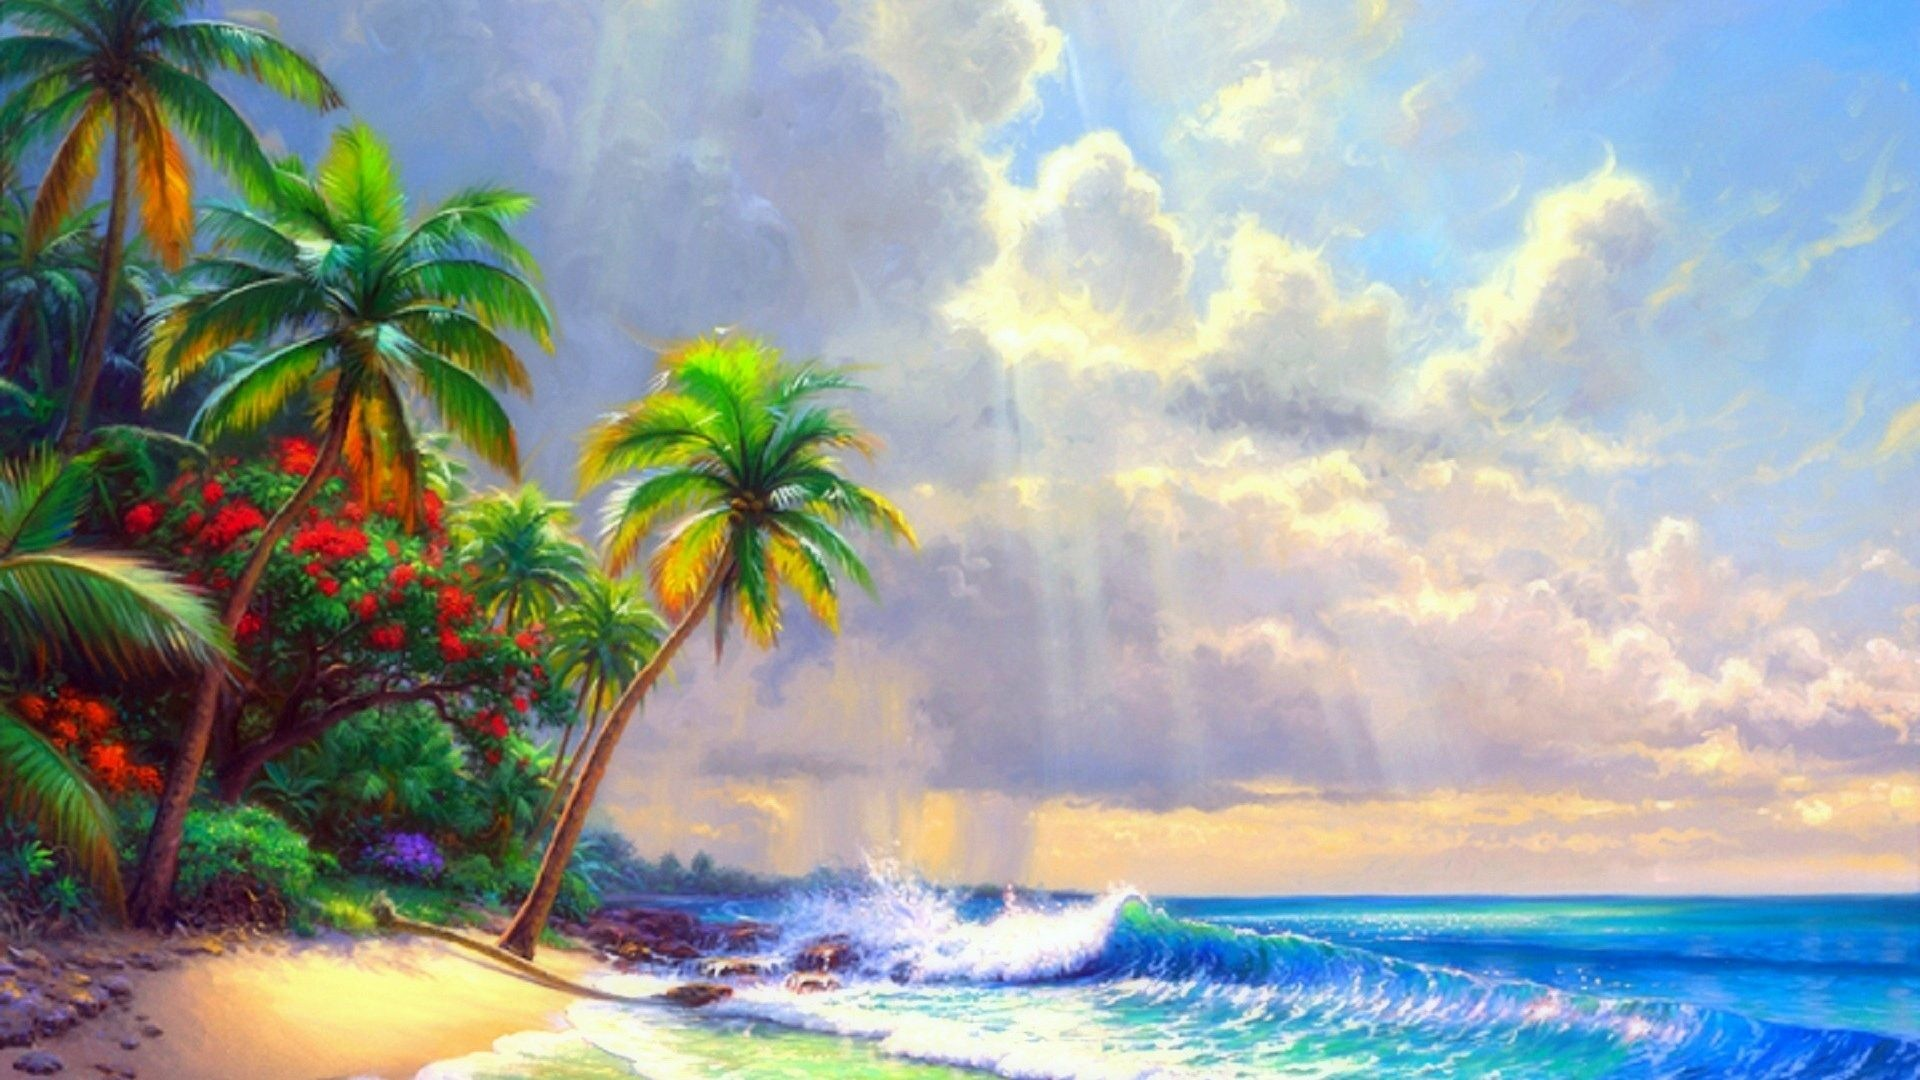 Panoramic Tag – Sea Paintings Getaways Sky Nature Clearing Bright Beaches  Relaxing Creative Tropical Scenery Clouds